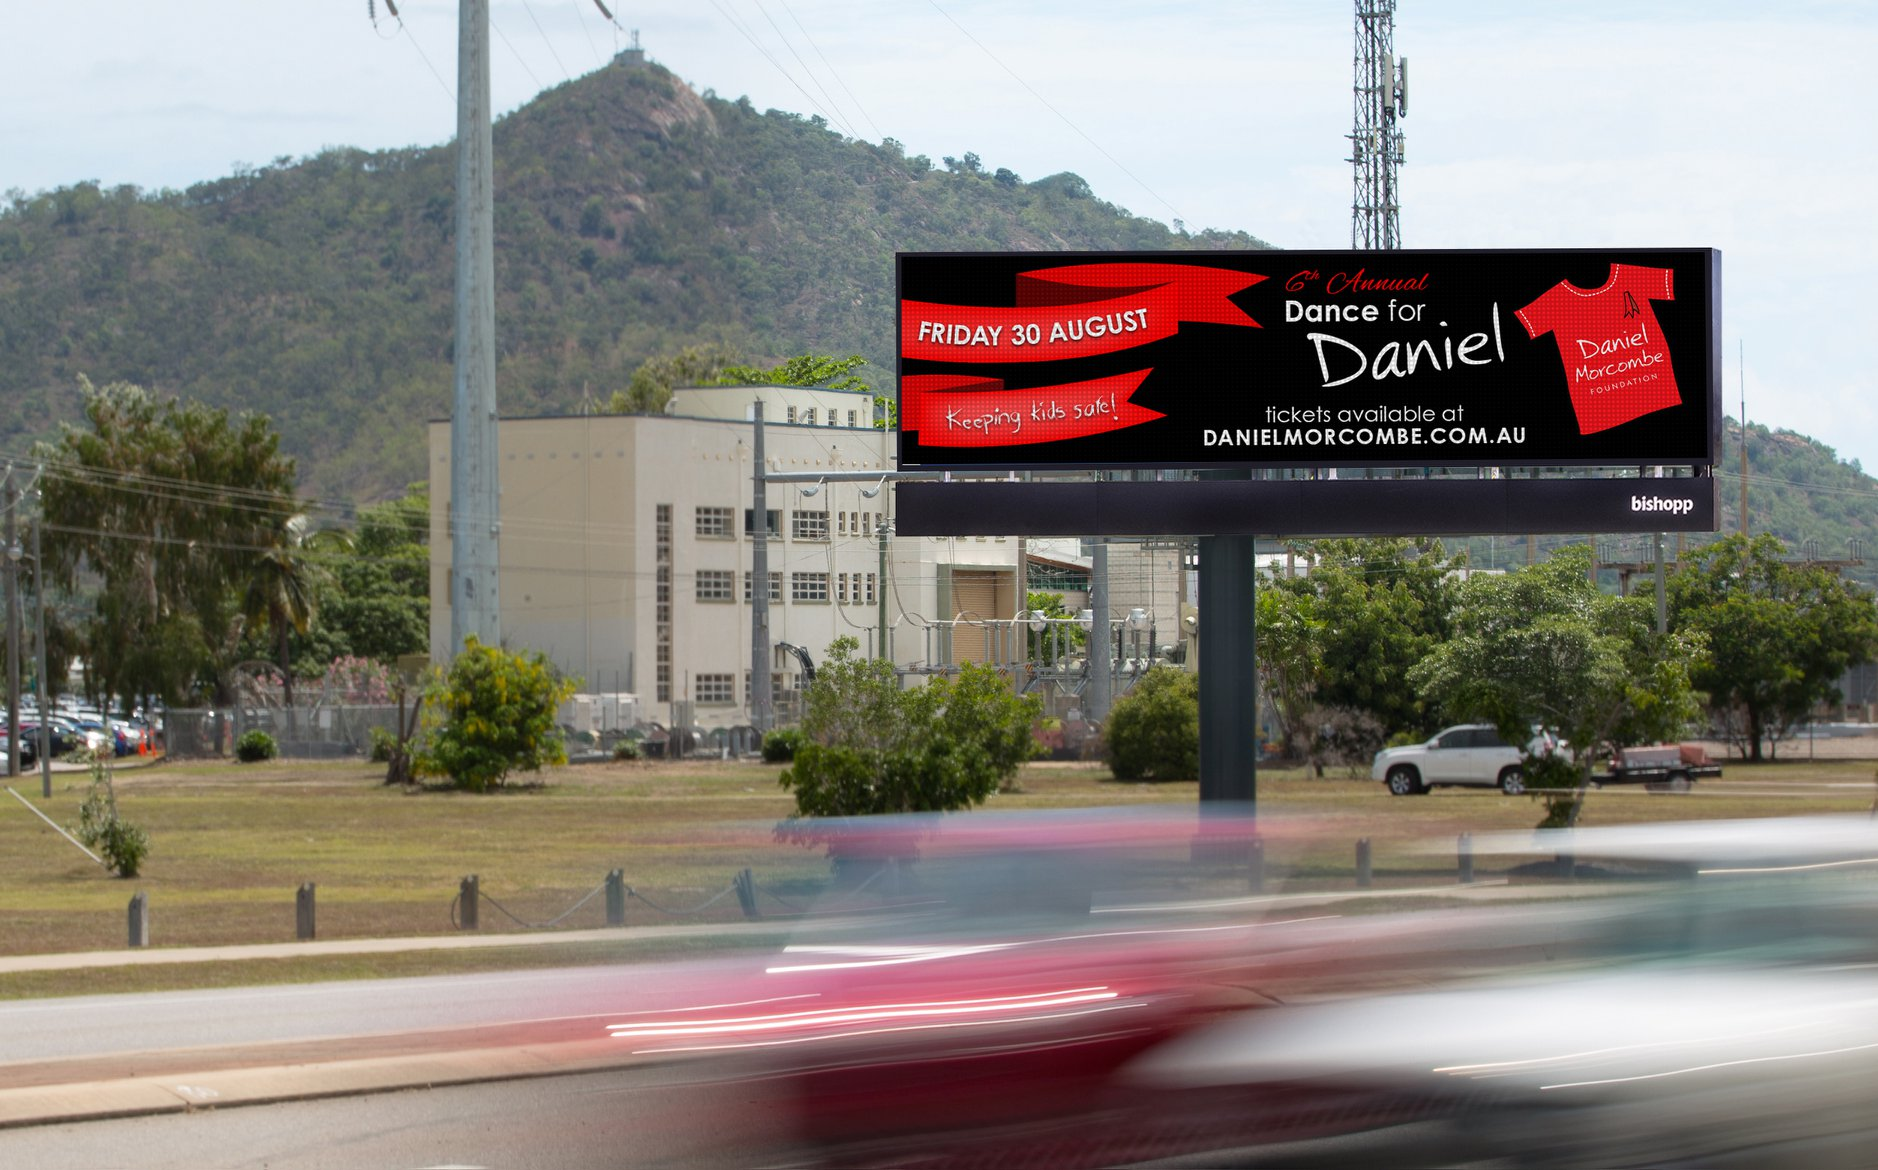 Special event marketing and advertising using out-of-home billboards